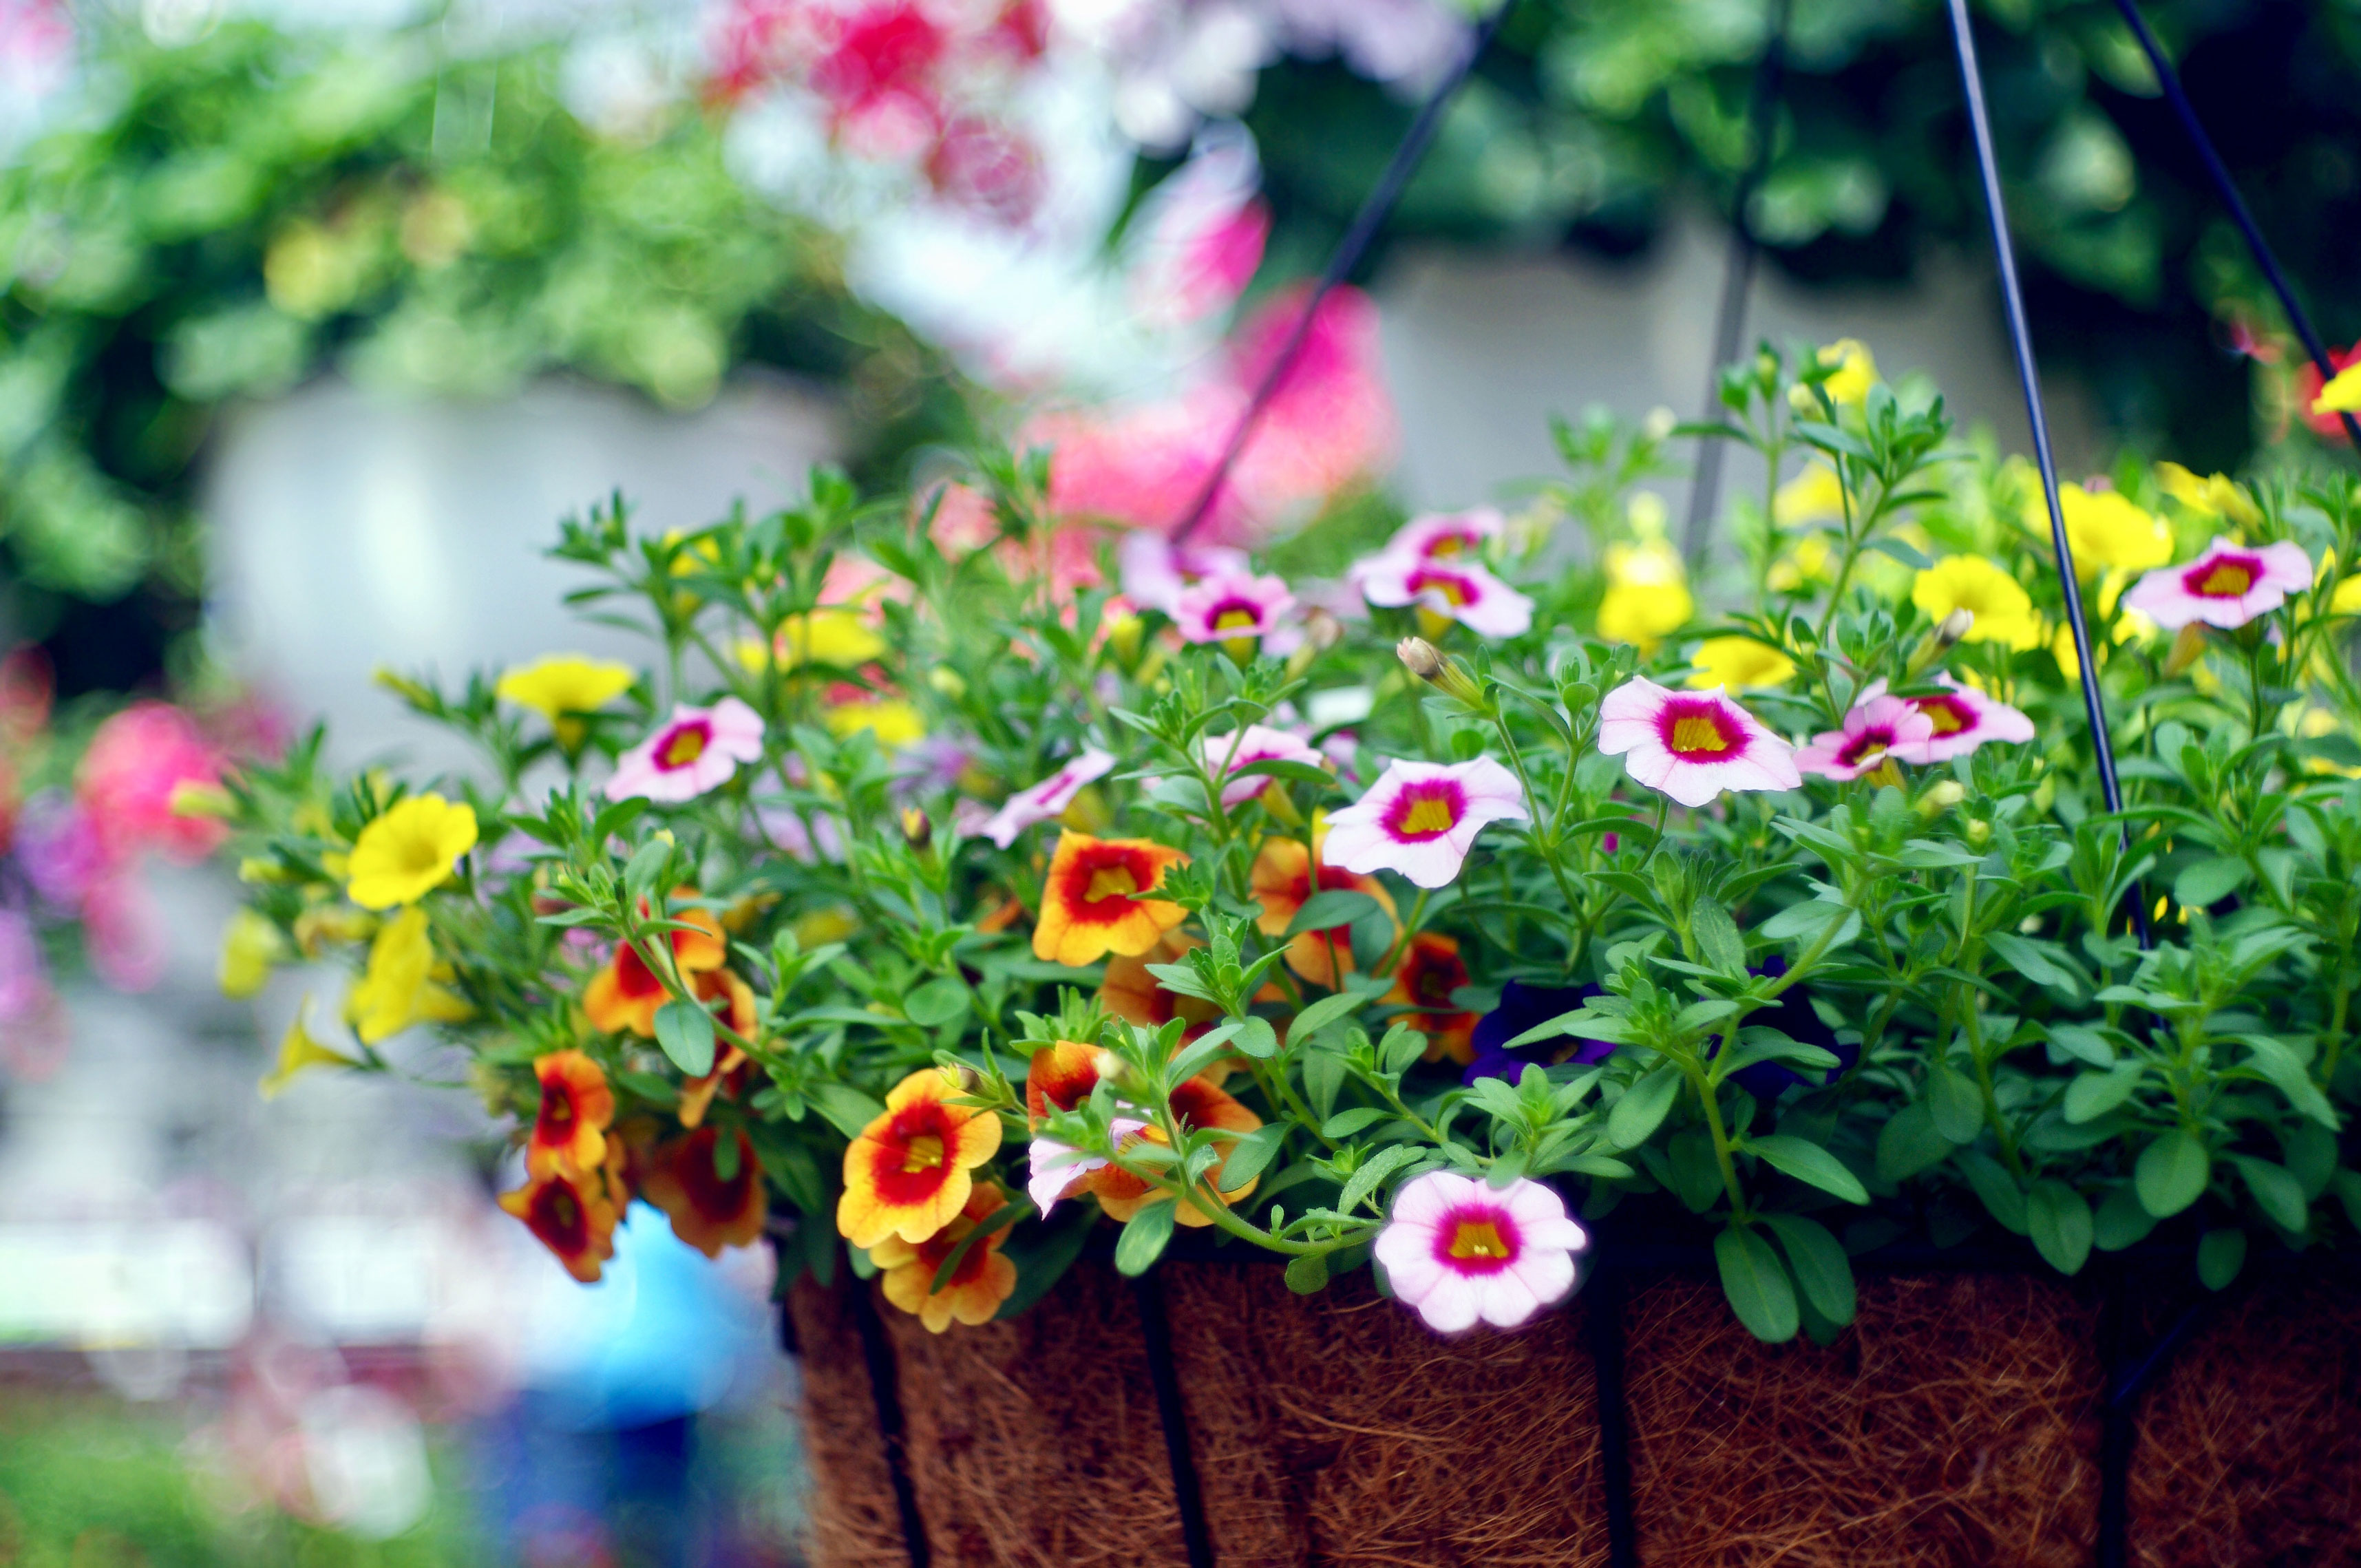 Five Ways Easy Ways to Add Flowers to Your Front Porch